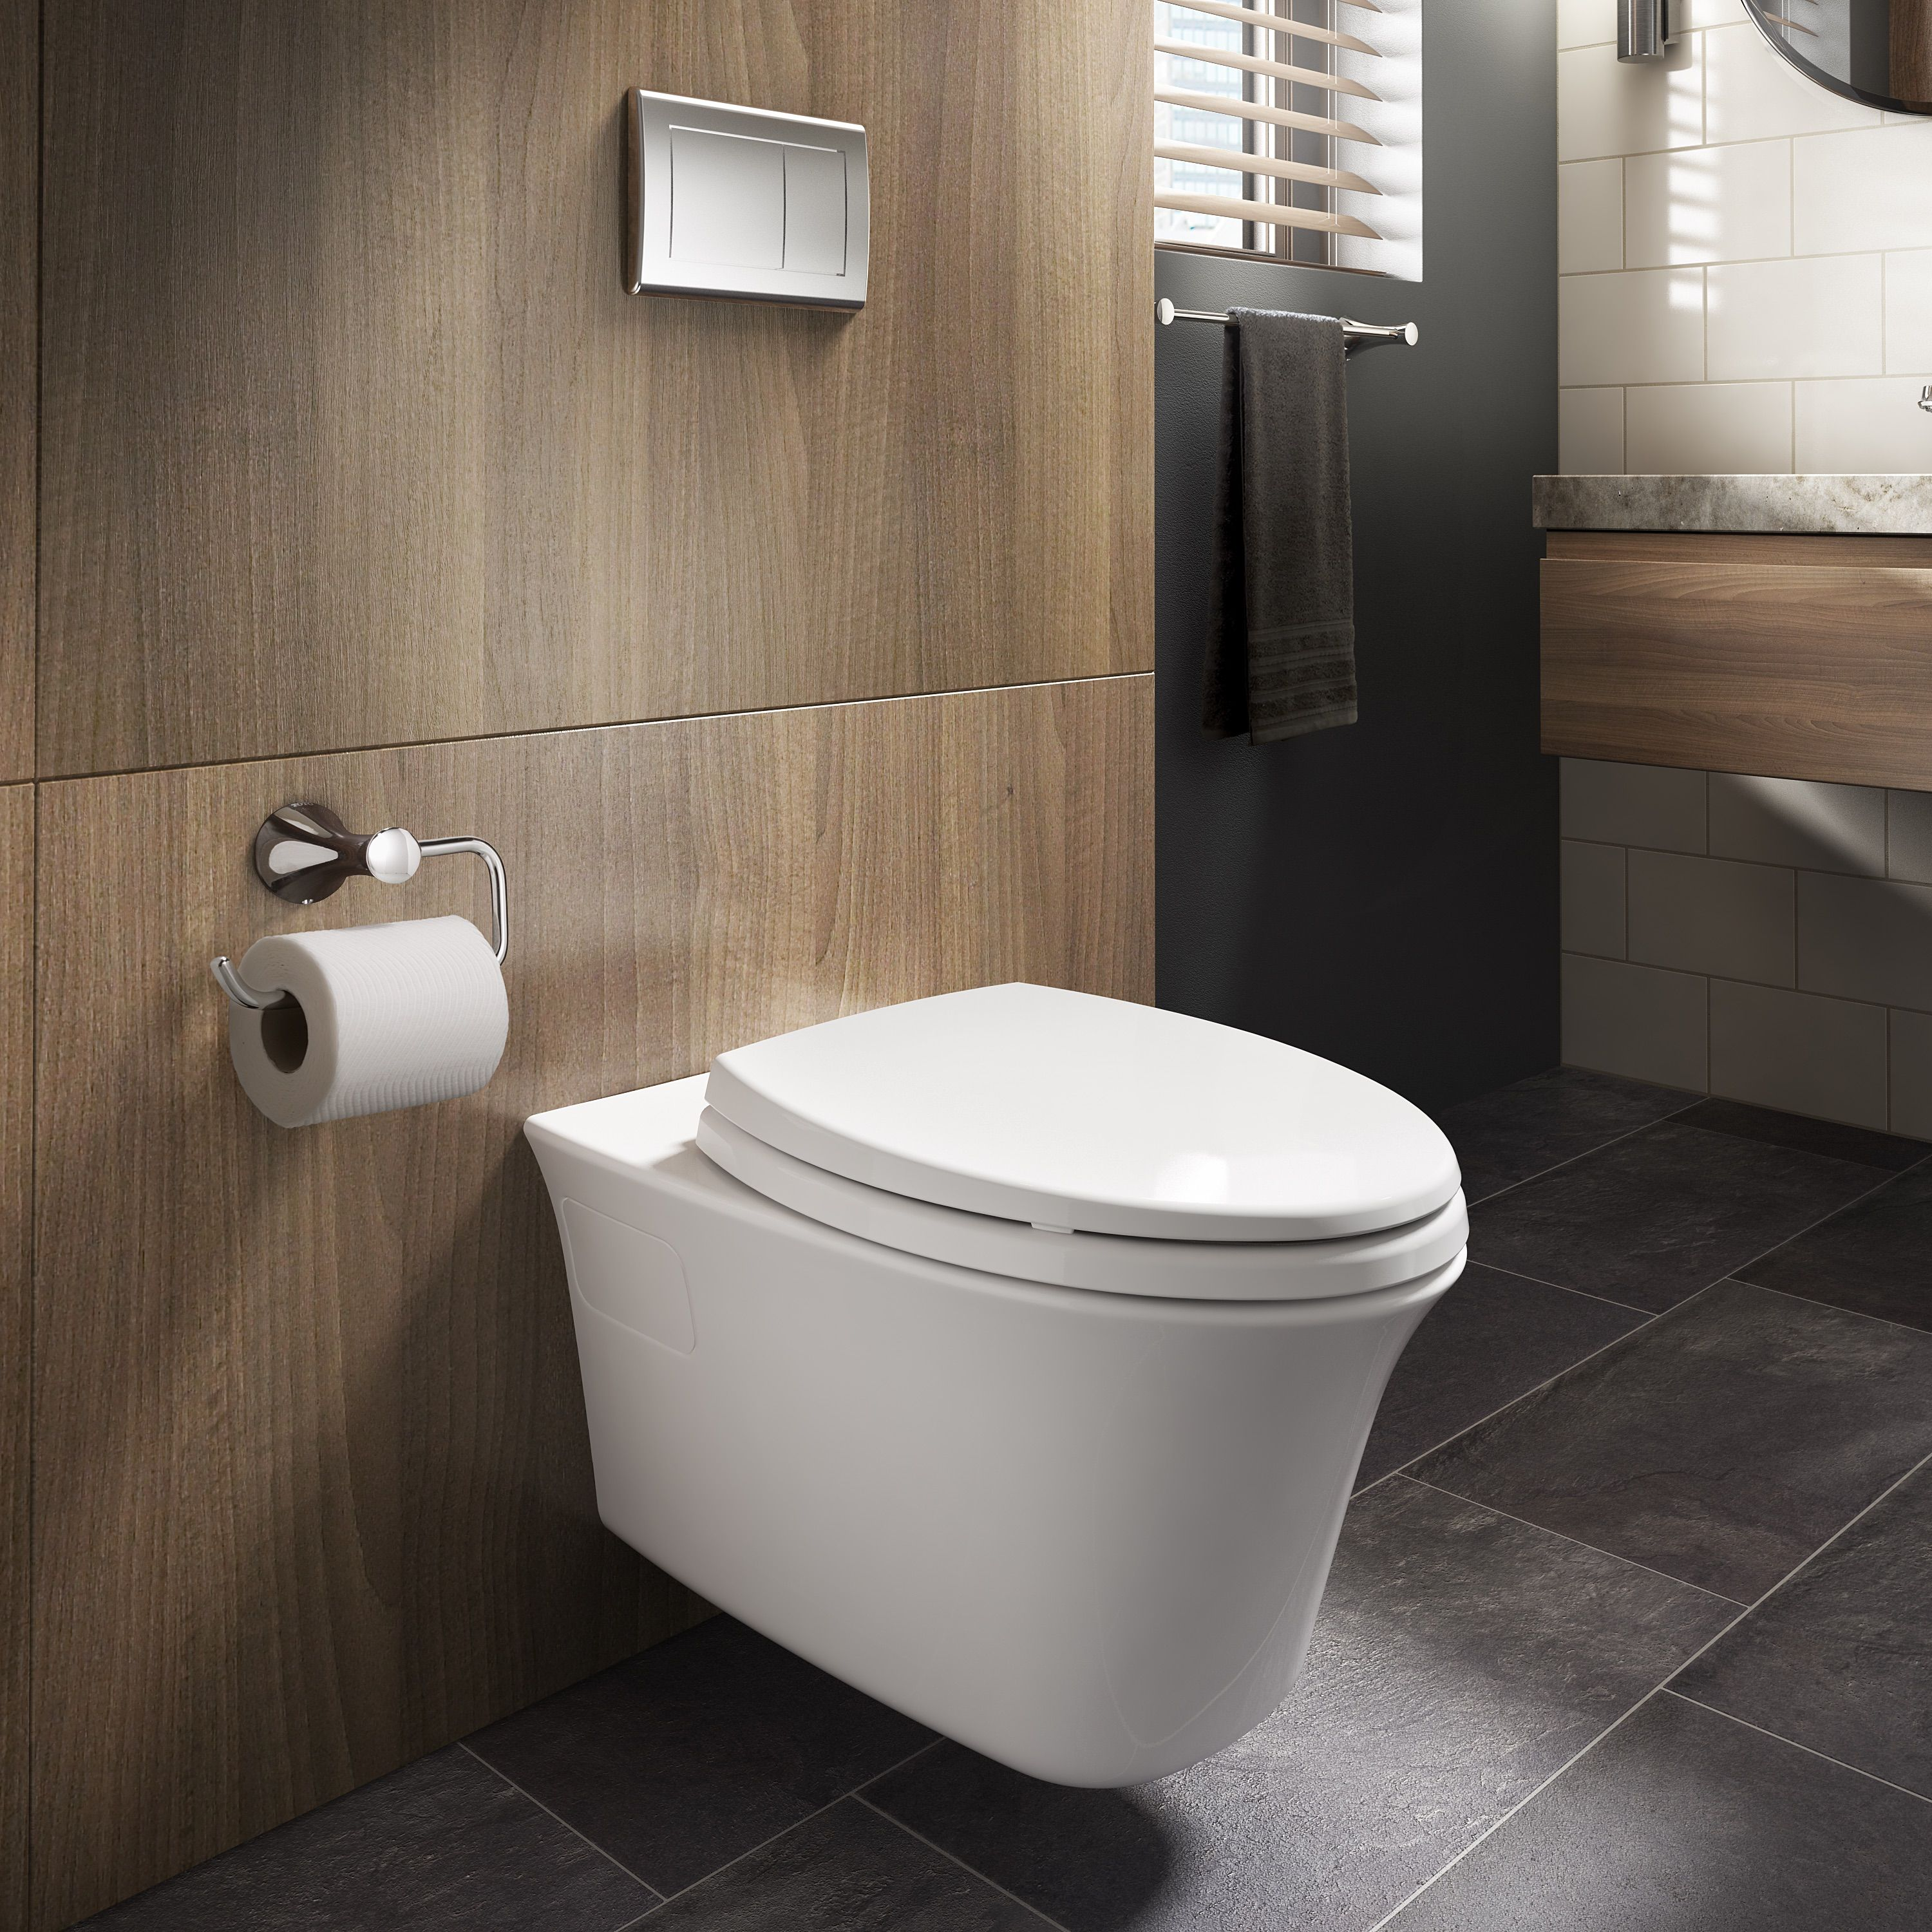 Toto Wall Hung Toilets Open Up Bathroom Space Pairing A Unique